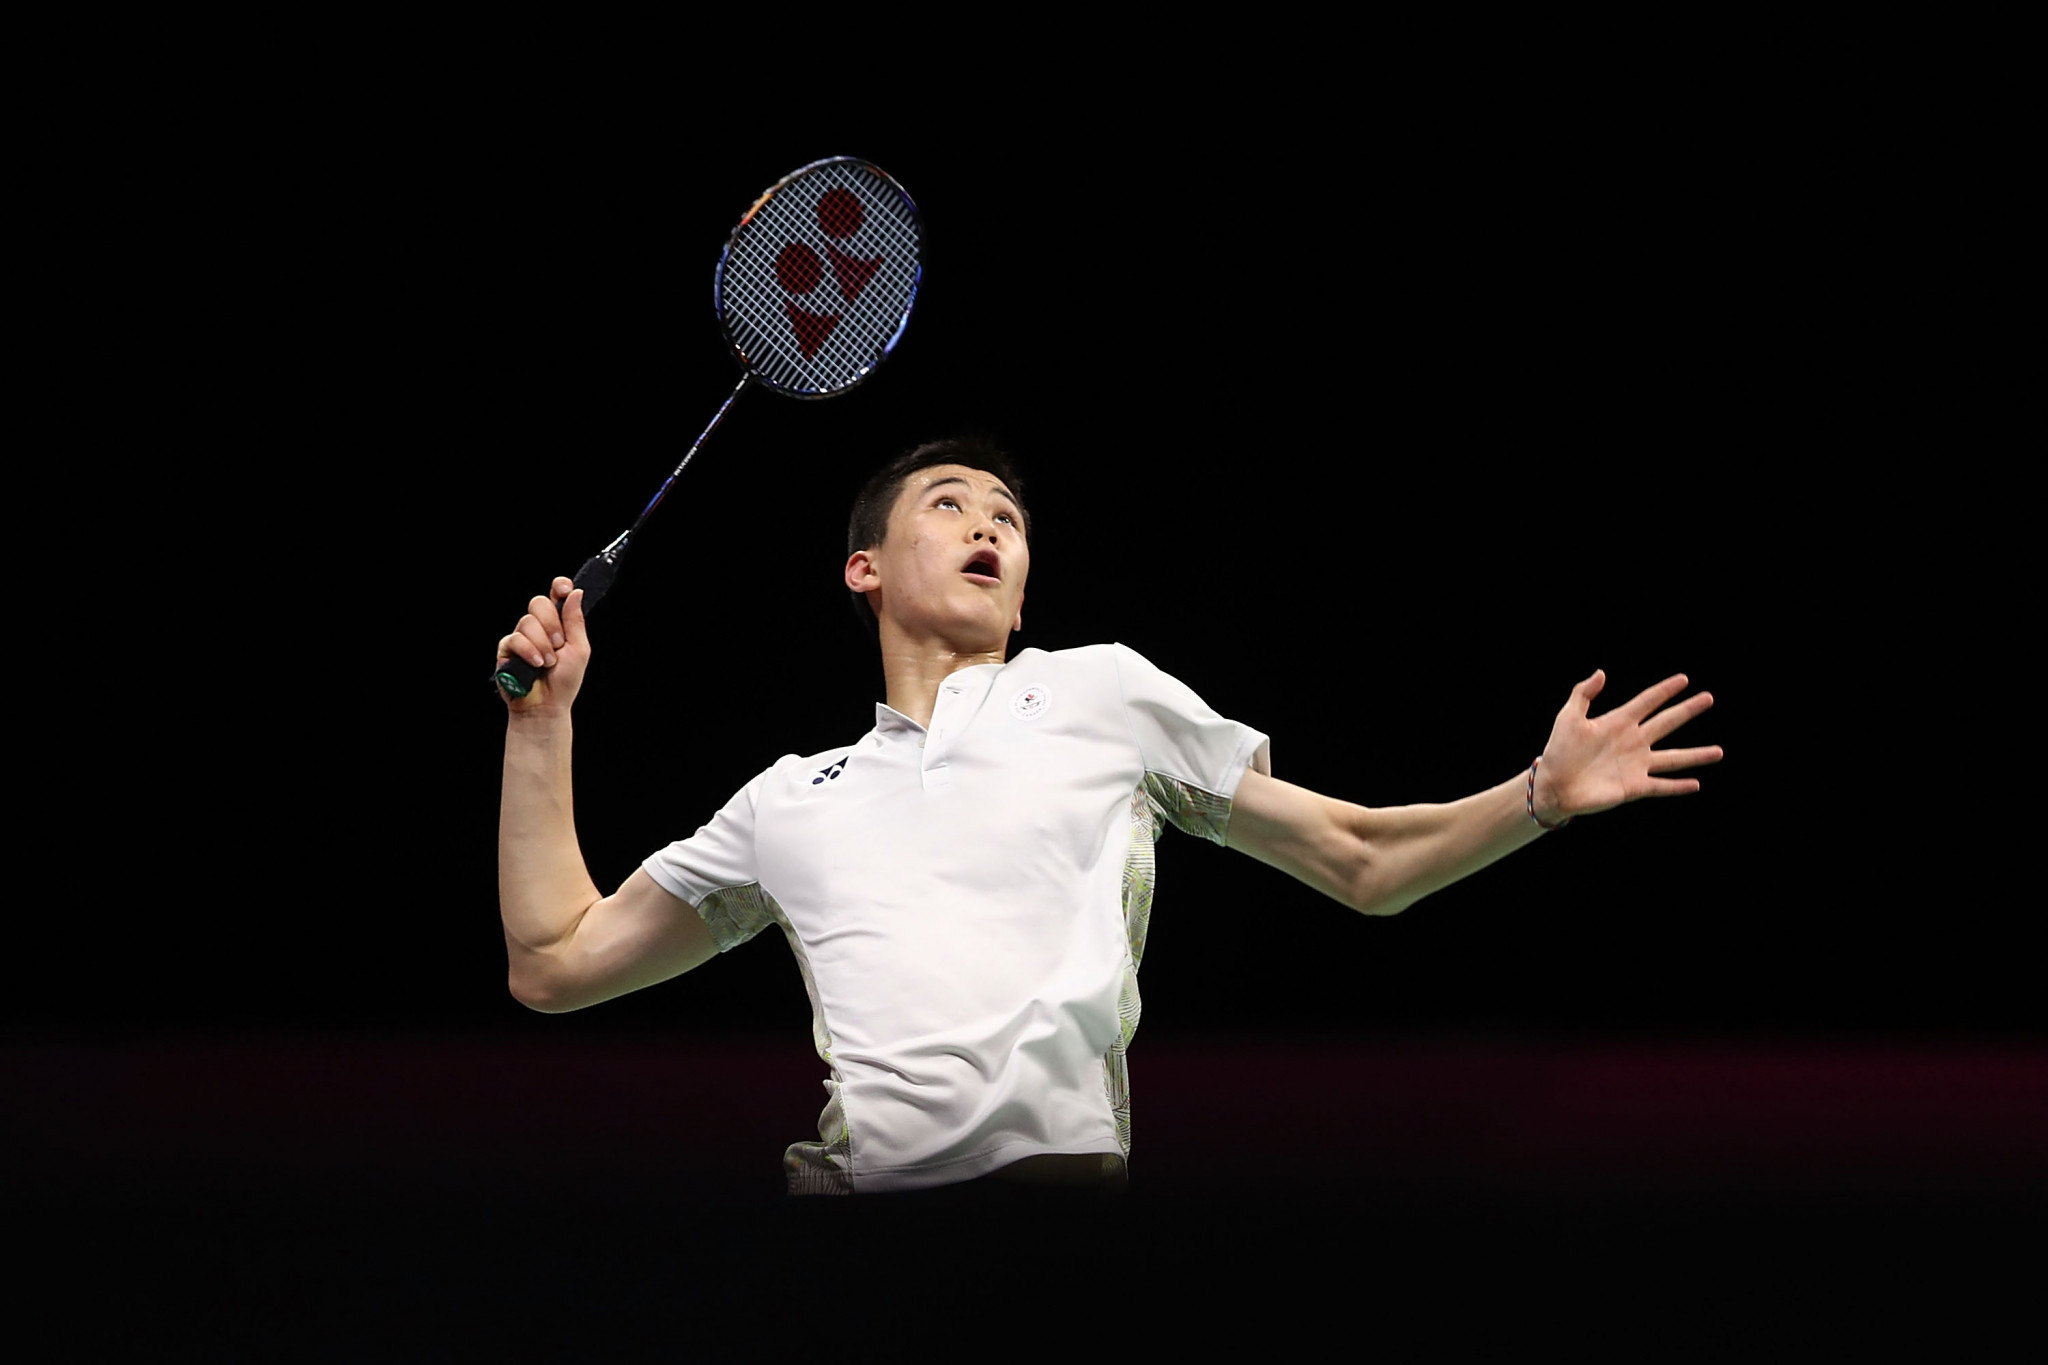 Brian Yang is aiming to secure his first men's singles title at the Pan American Individual Badminton Championships ©Getty Images